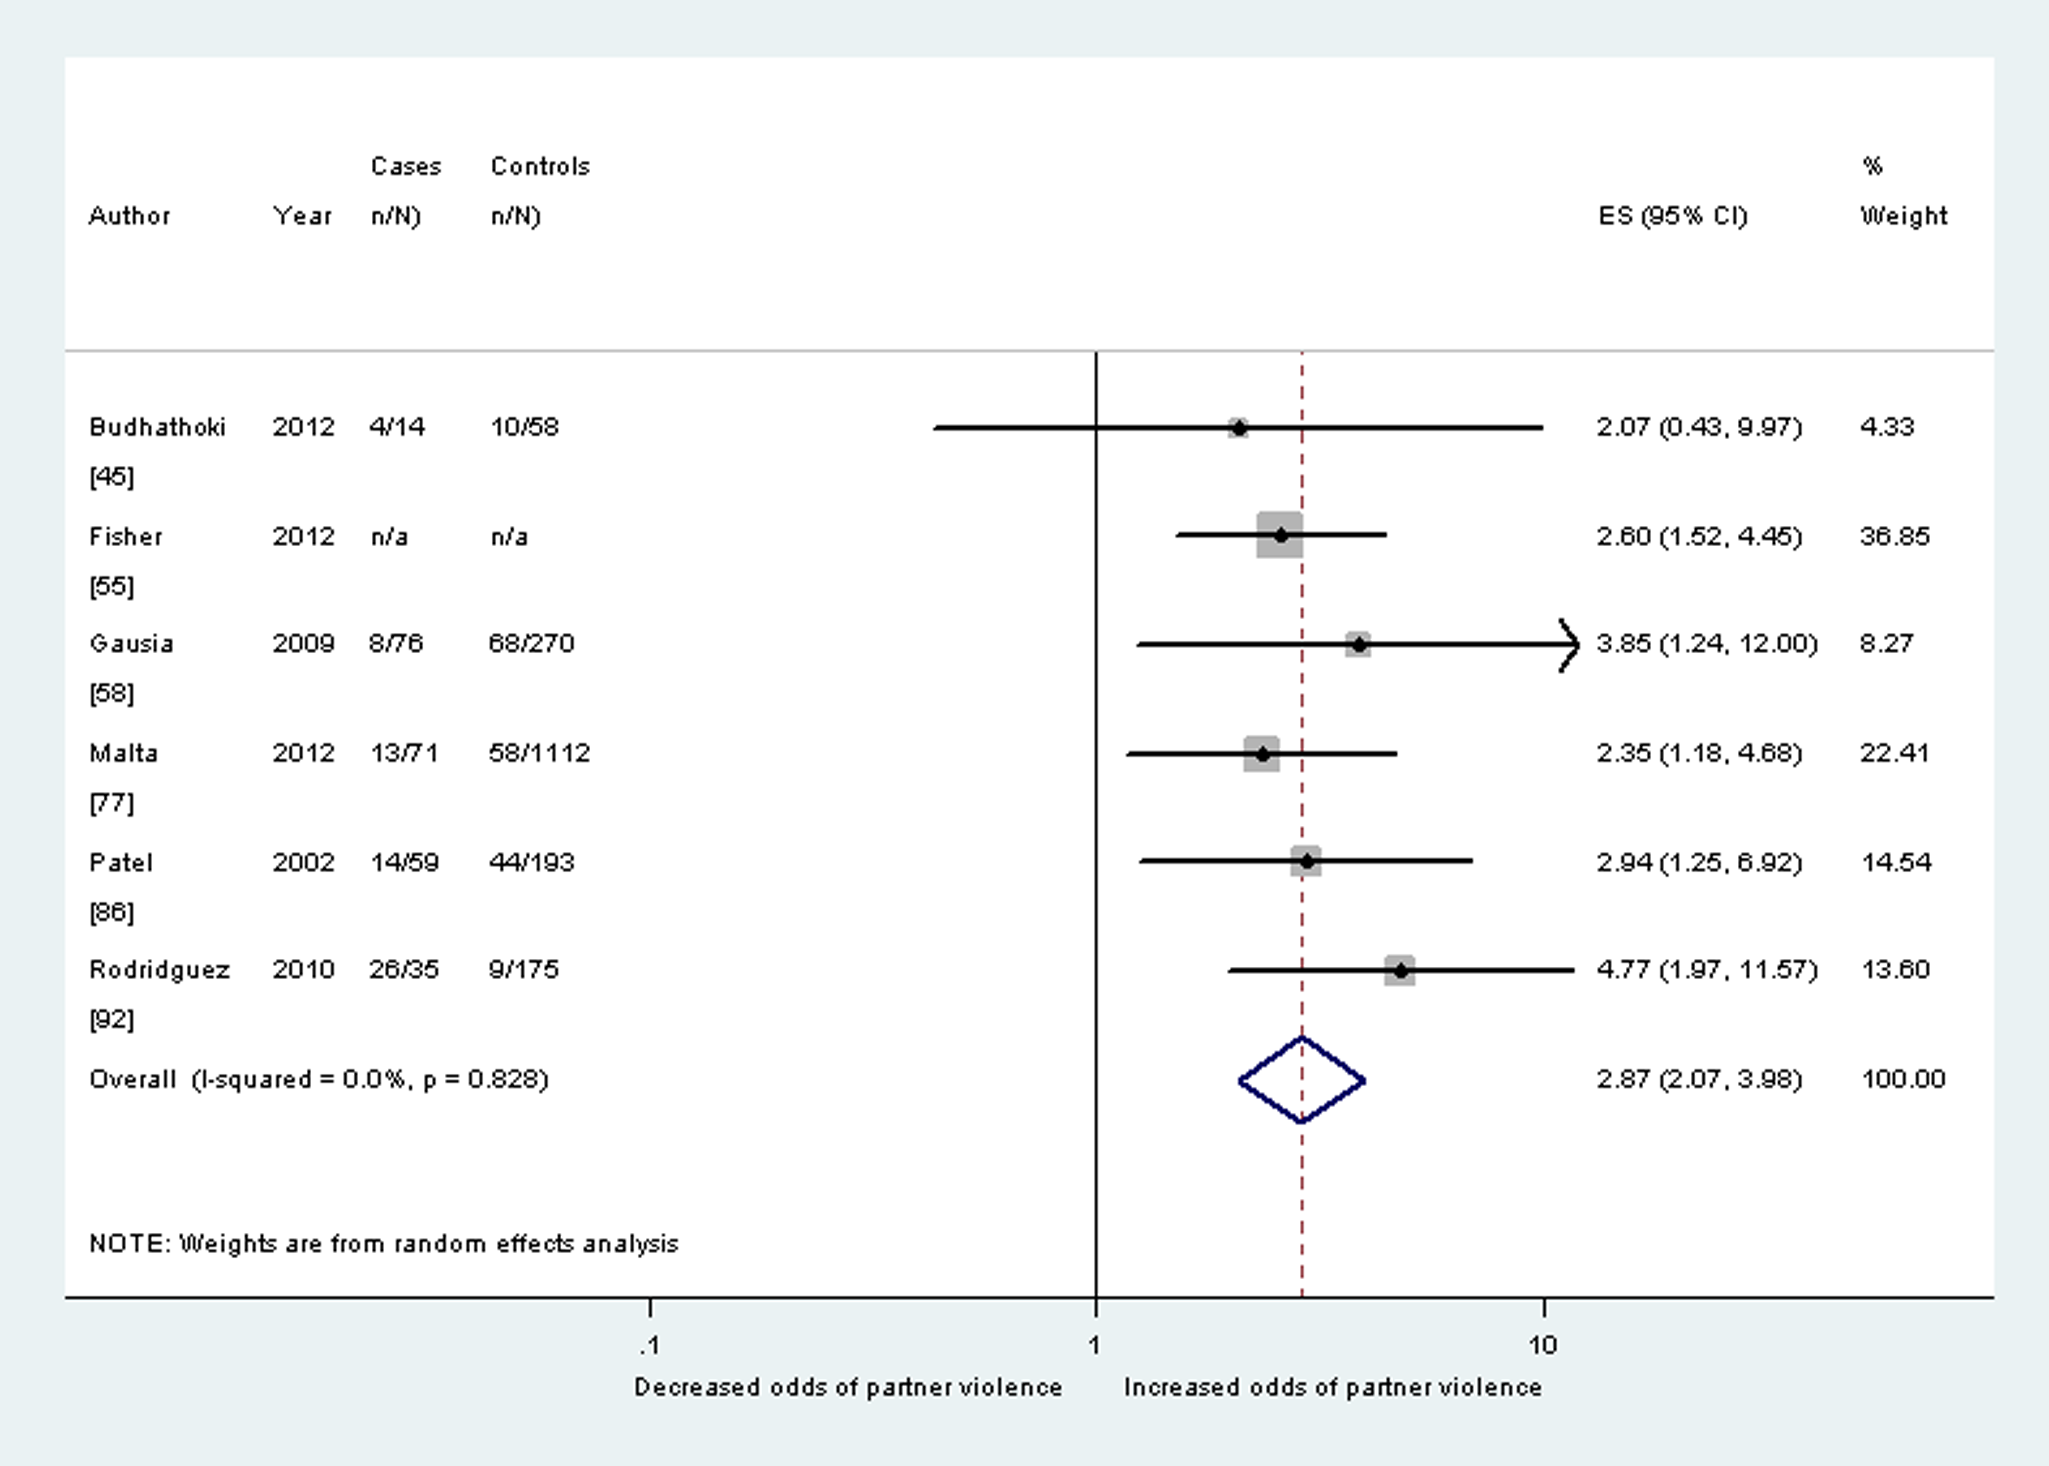 Meta-analysis of the association between any lifetime partner violence and postnatal depression (cohort studies).